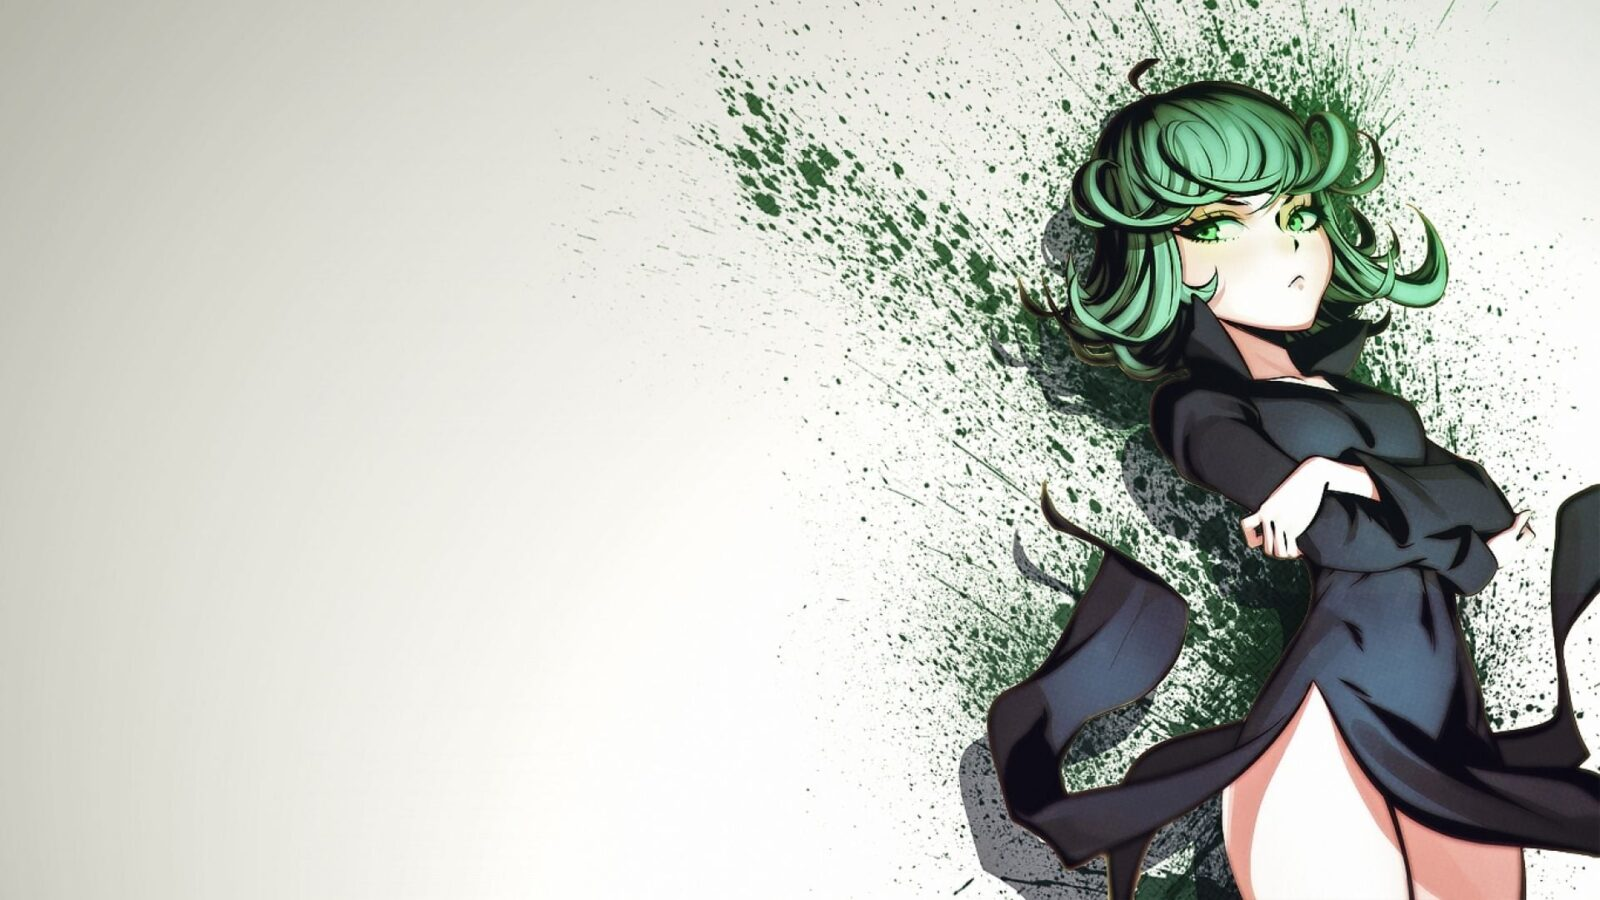 One Punch Man Tatsumaki 2016 wallpaper